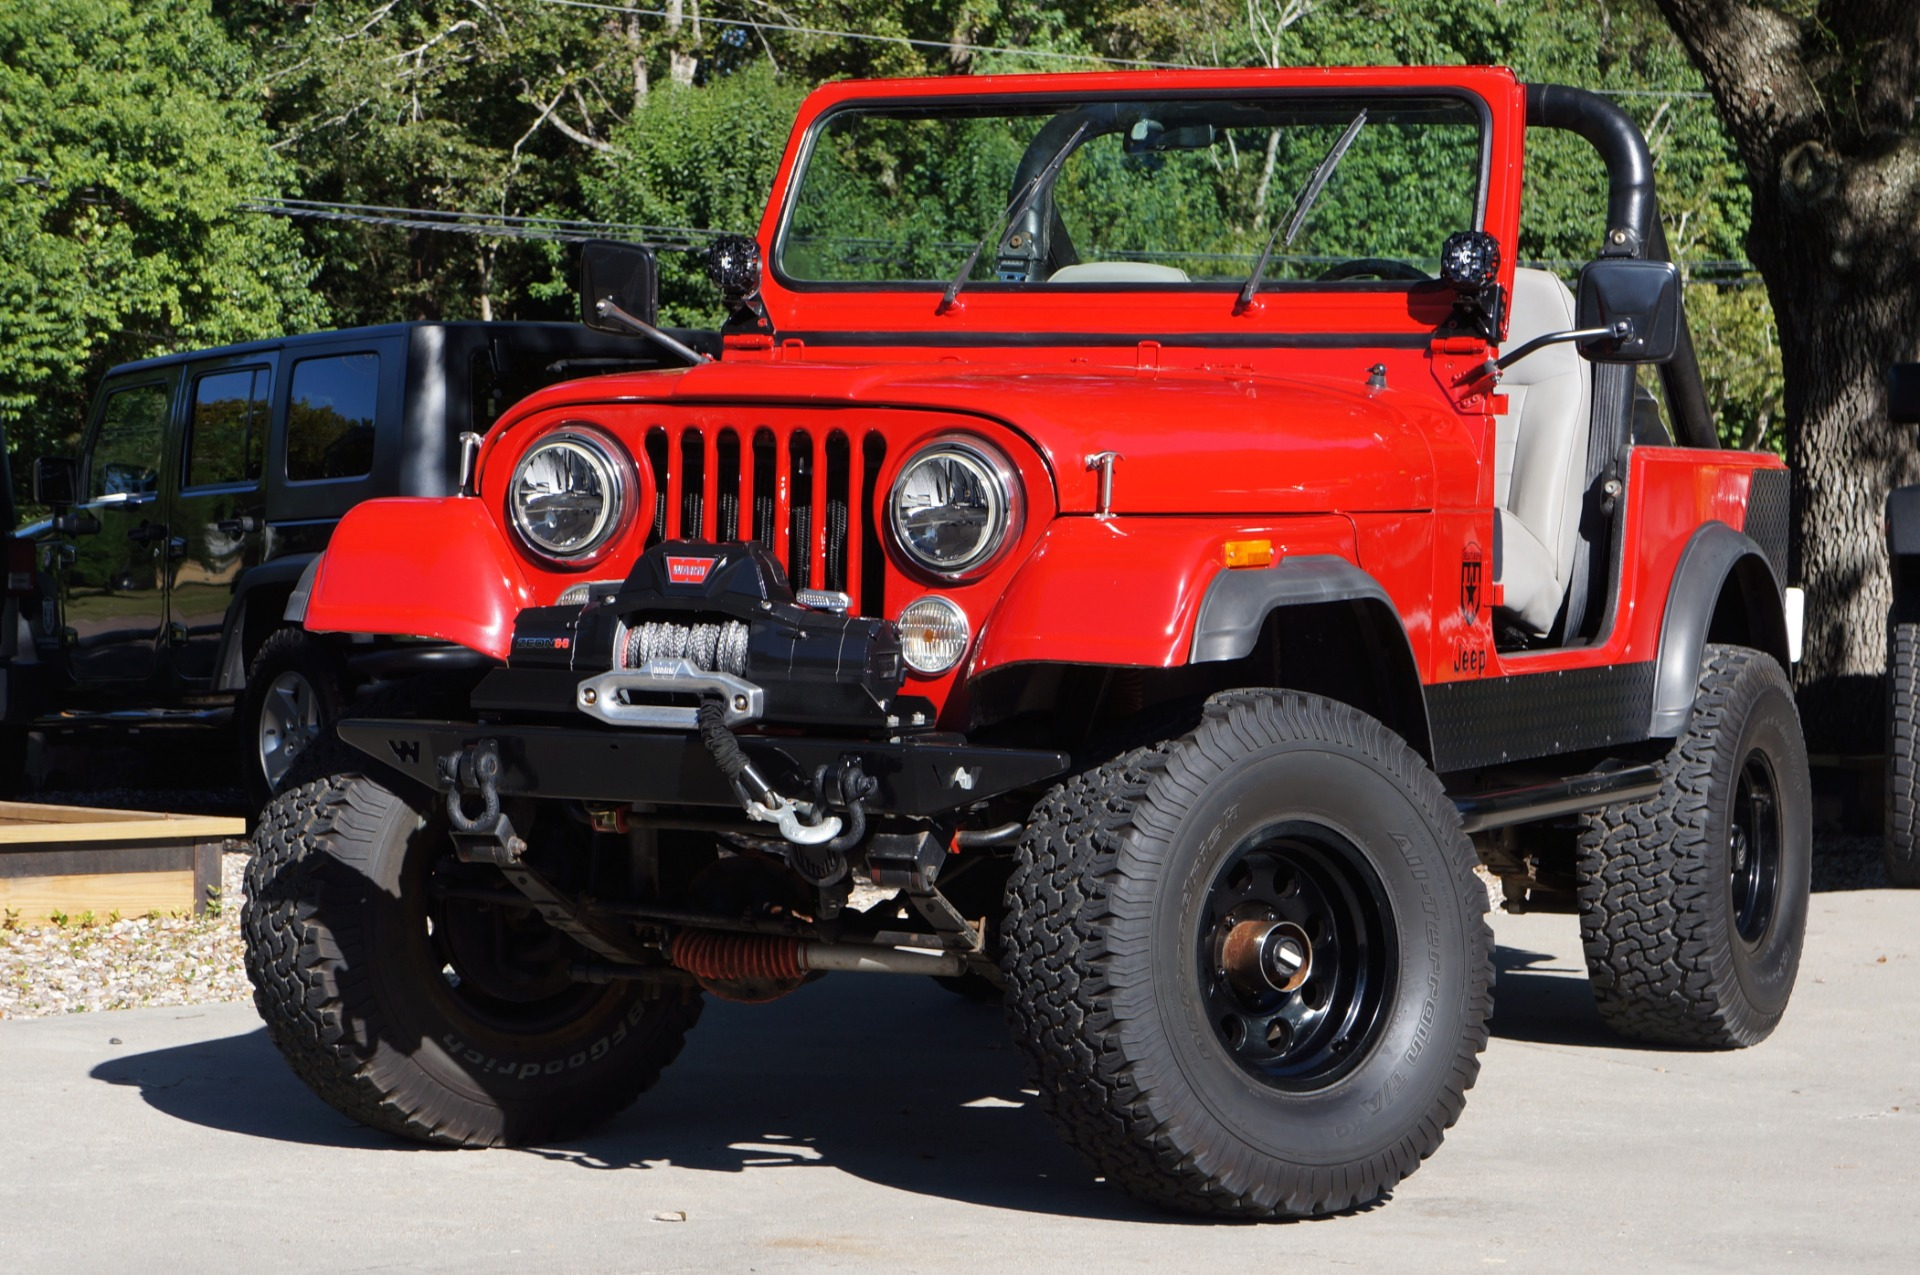 Used-1983-Jeep-CJ-7-4WD-Wagon-CJ7